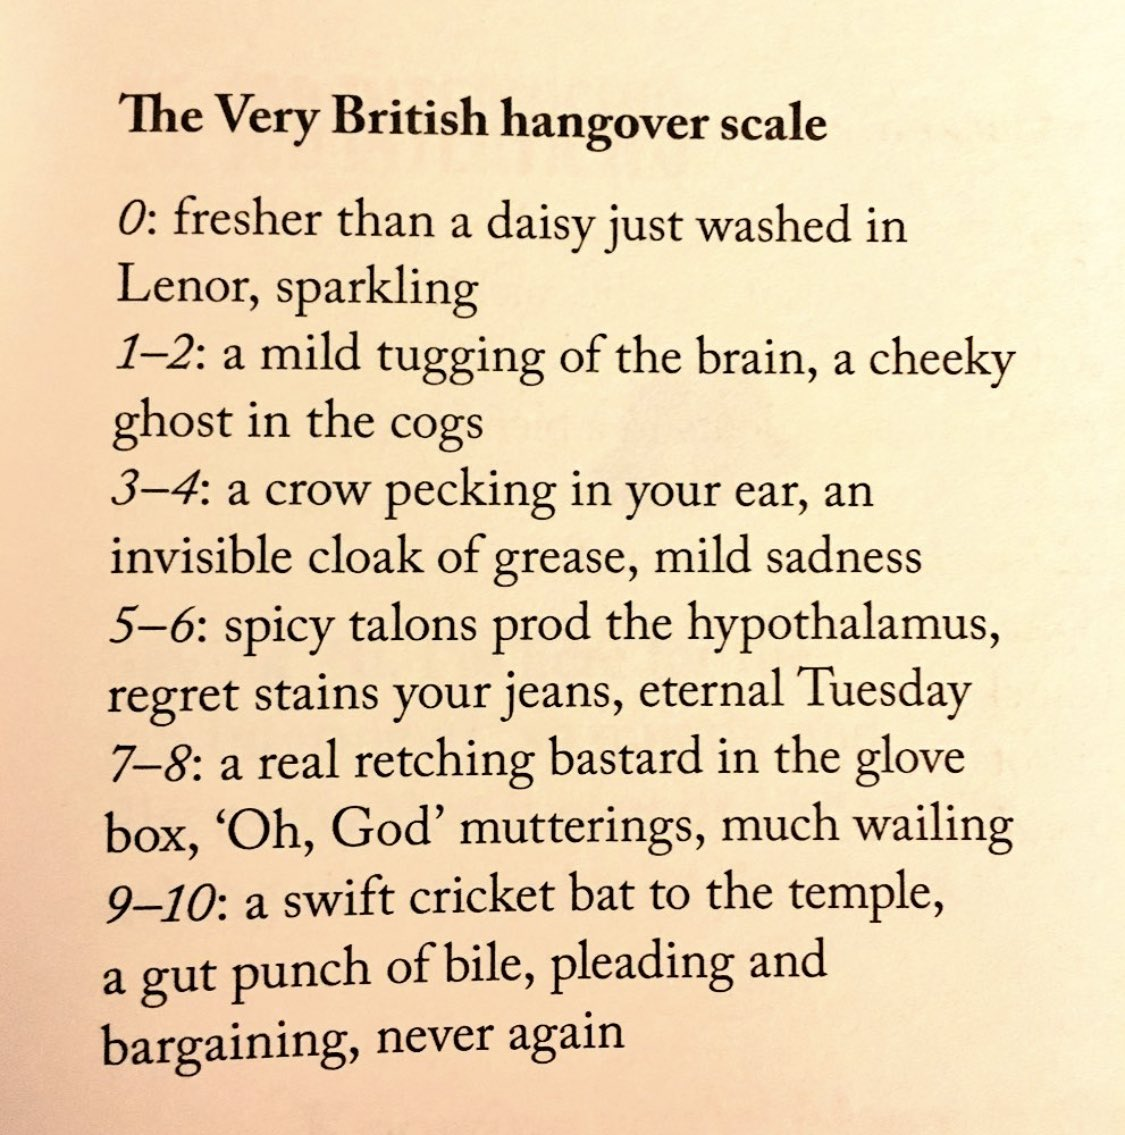 The Very British Hangover Scale. To achieve level 0, just stick to tea - much better for you ☕️  (https://t.co/ITyIovf5Yb) https://t.co/vSwhJQ2nba